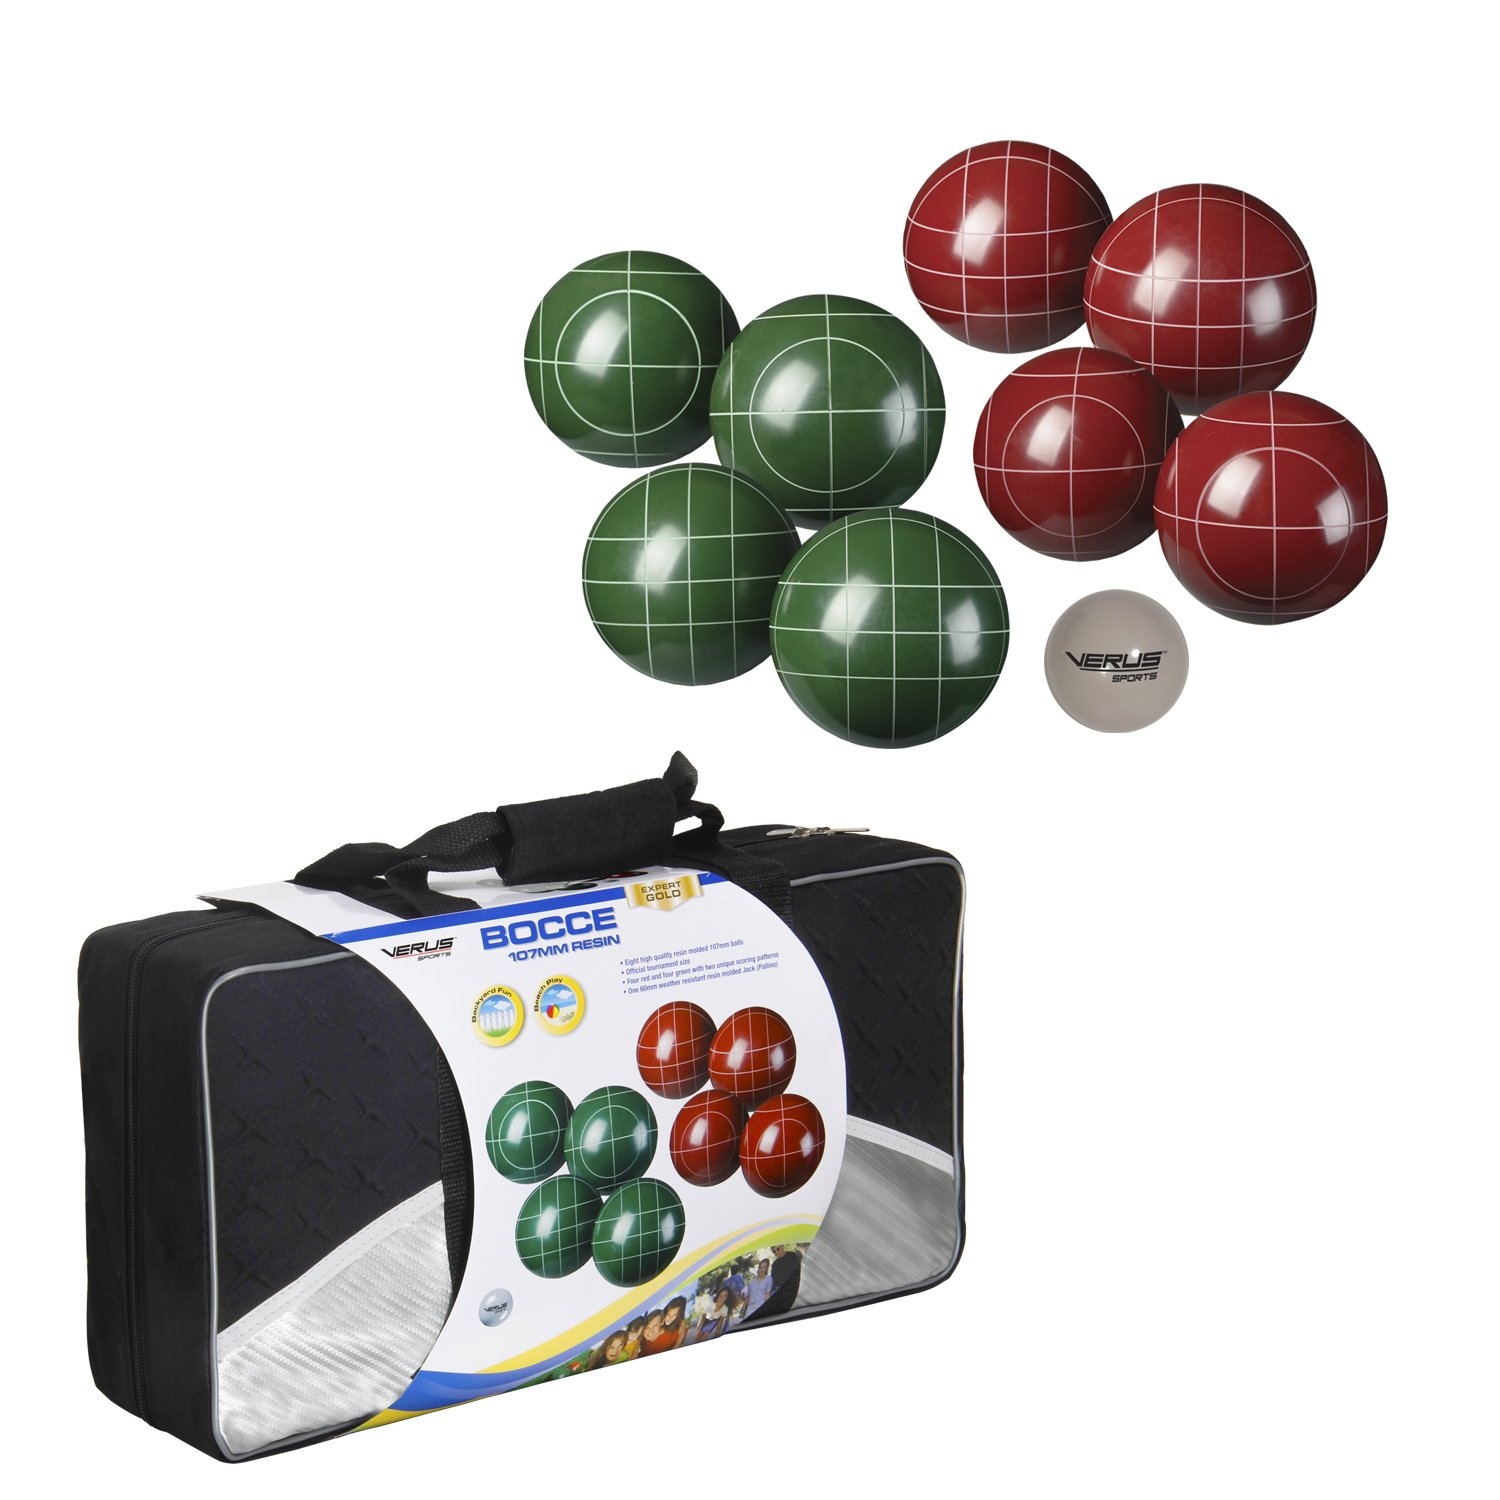 Verus Sports Expert Bocce Ball Set with Easy Carry Nylon Case (9-Piece), 107mm by Verus Sports (Image #1)